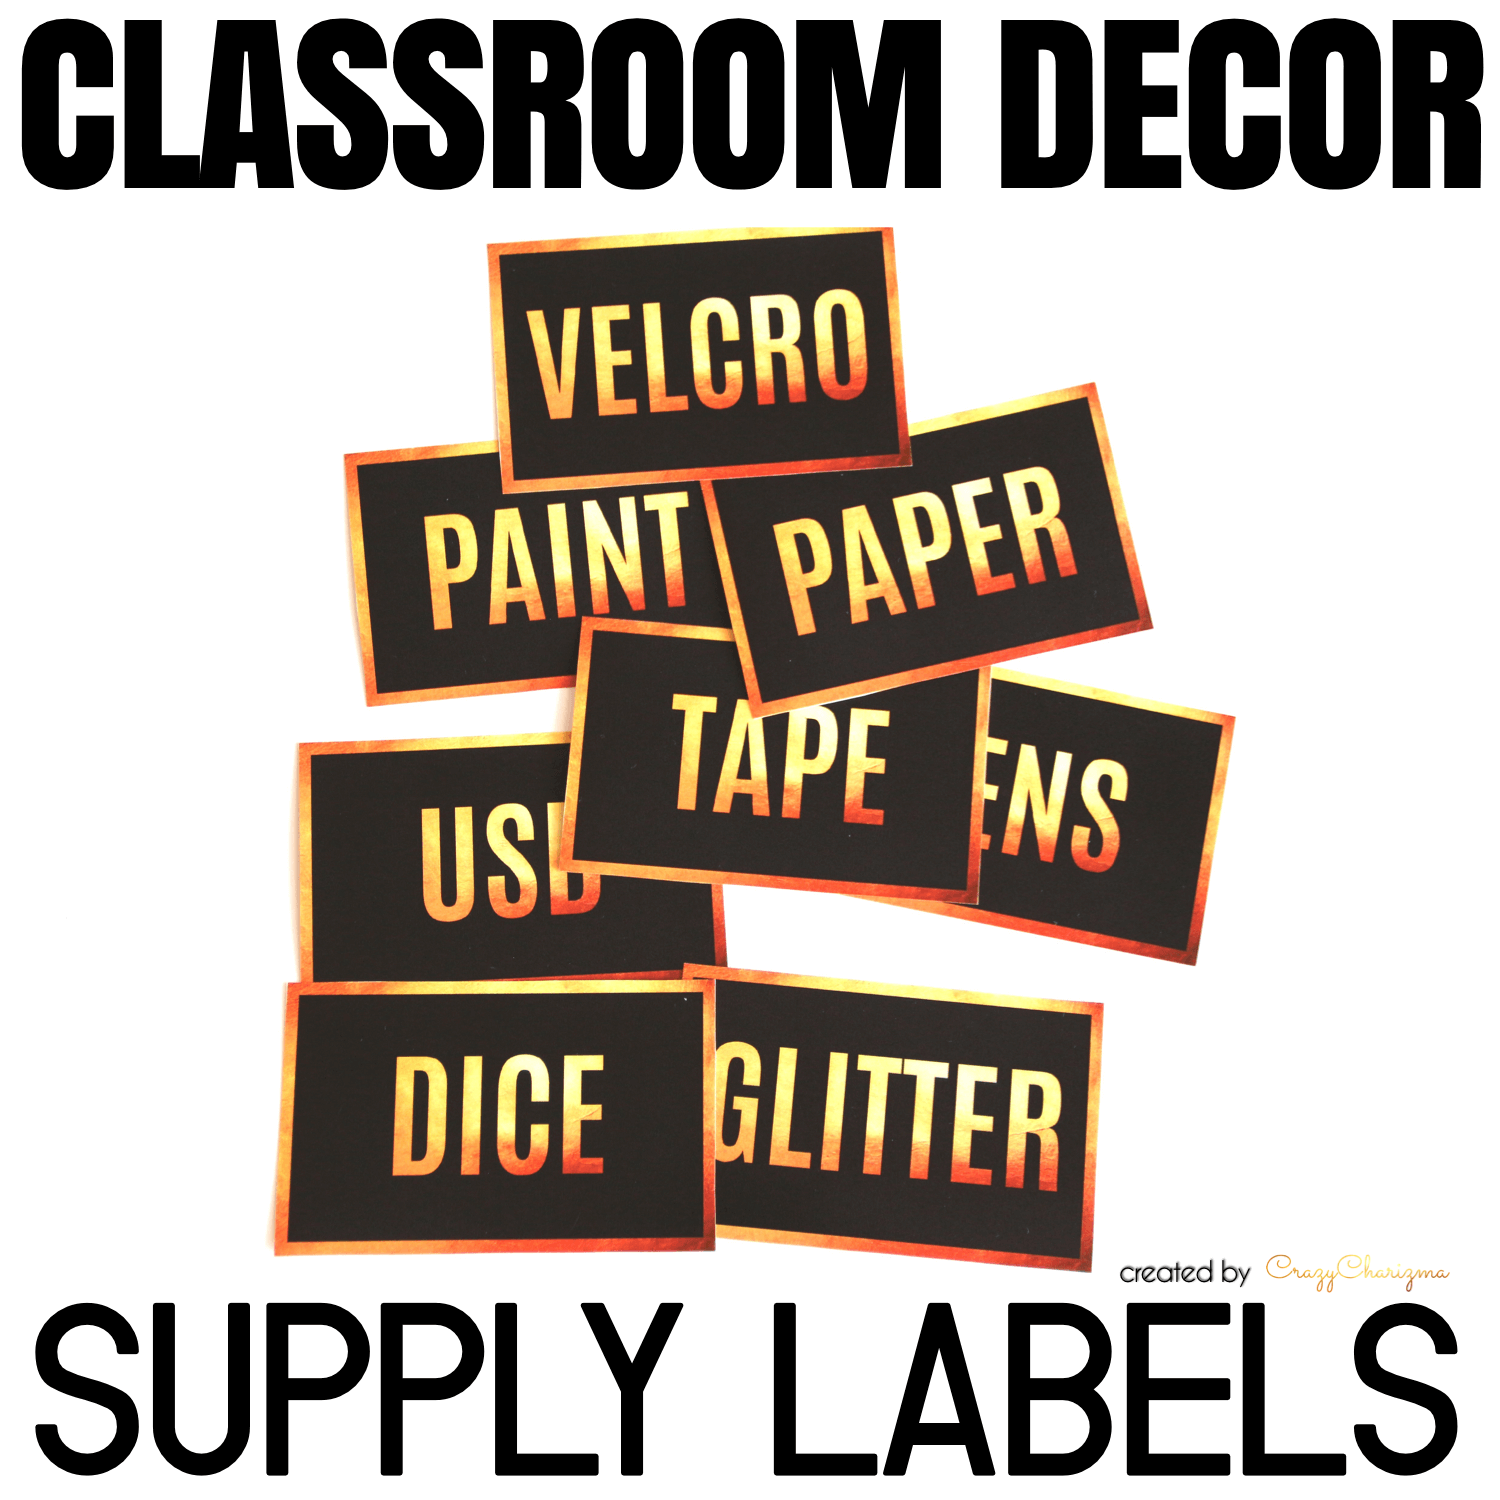 Decorate your classroom with this stylish BLACK and GOLD decor set. Find inside vibrant and bright Supply Labels.